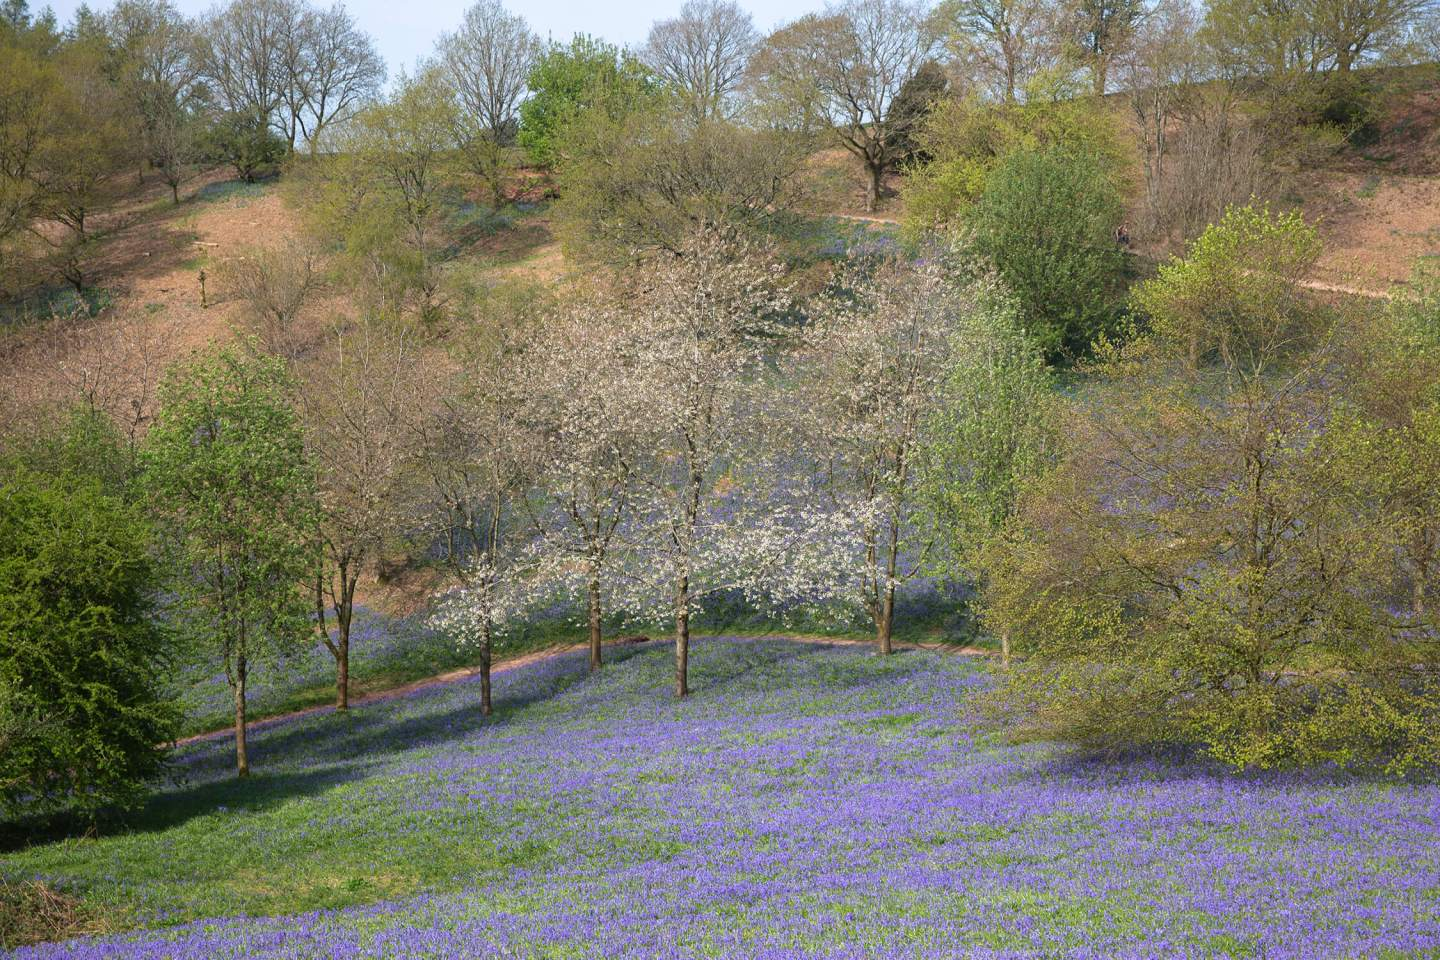 Bluebell-fields-in-the-west-midlands.jpg